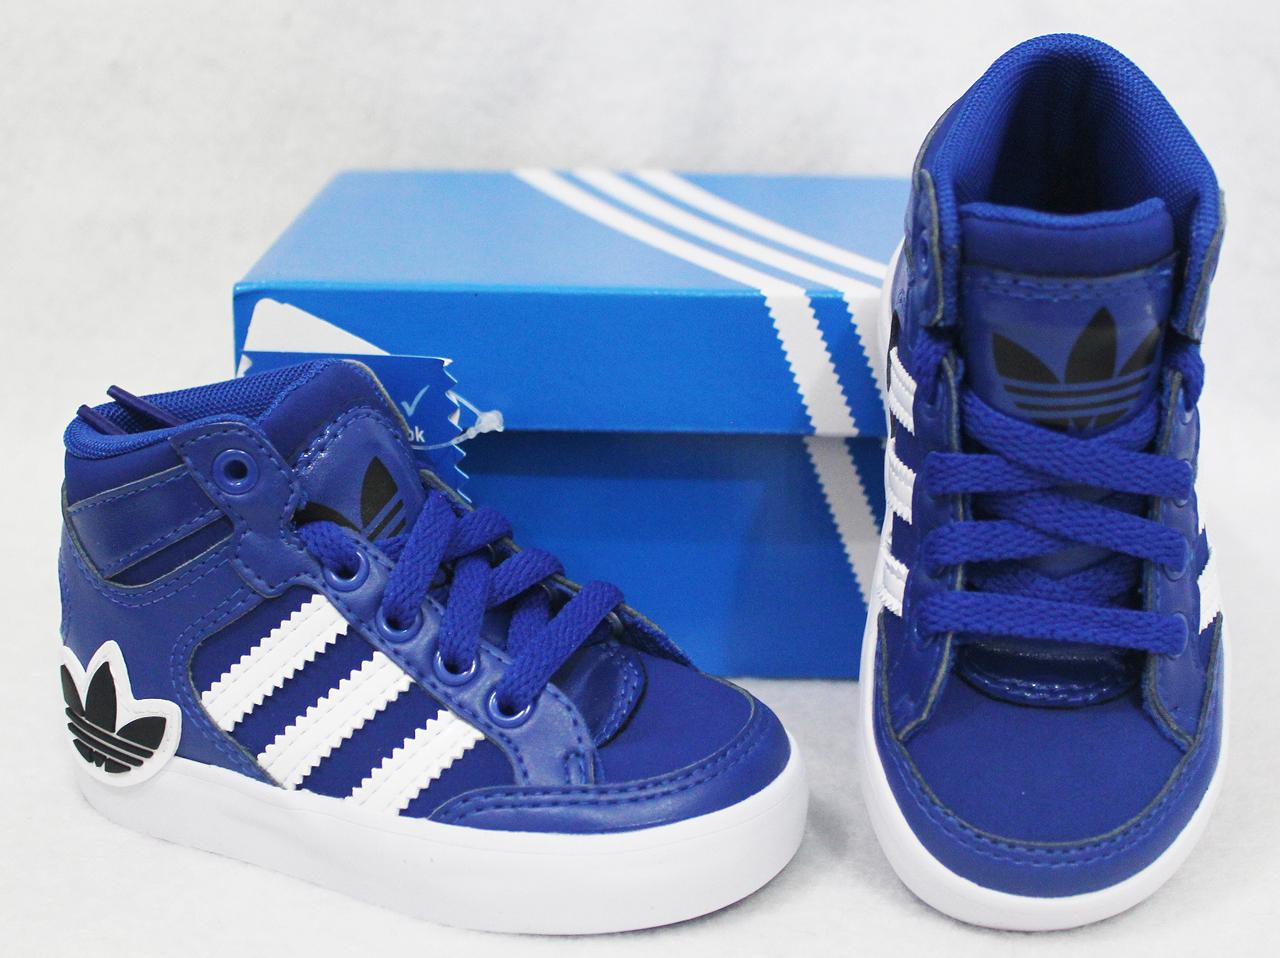 ADIDAS-ORIGINALS-HARD-COURT-HI-BABY-TODDLERS-KIDS-BOYS-SHOES-BLUE-US-5-10